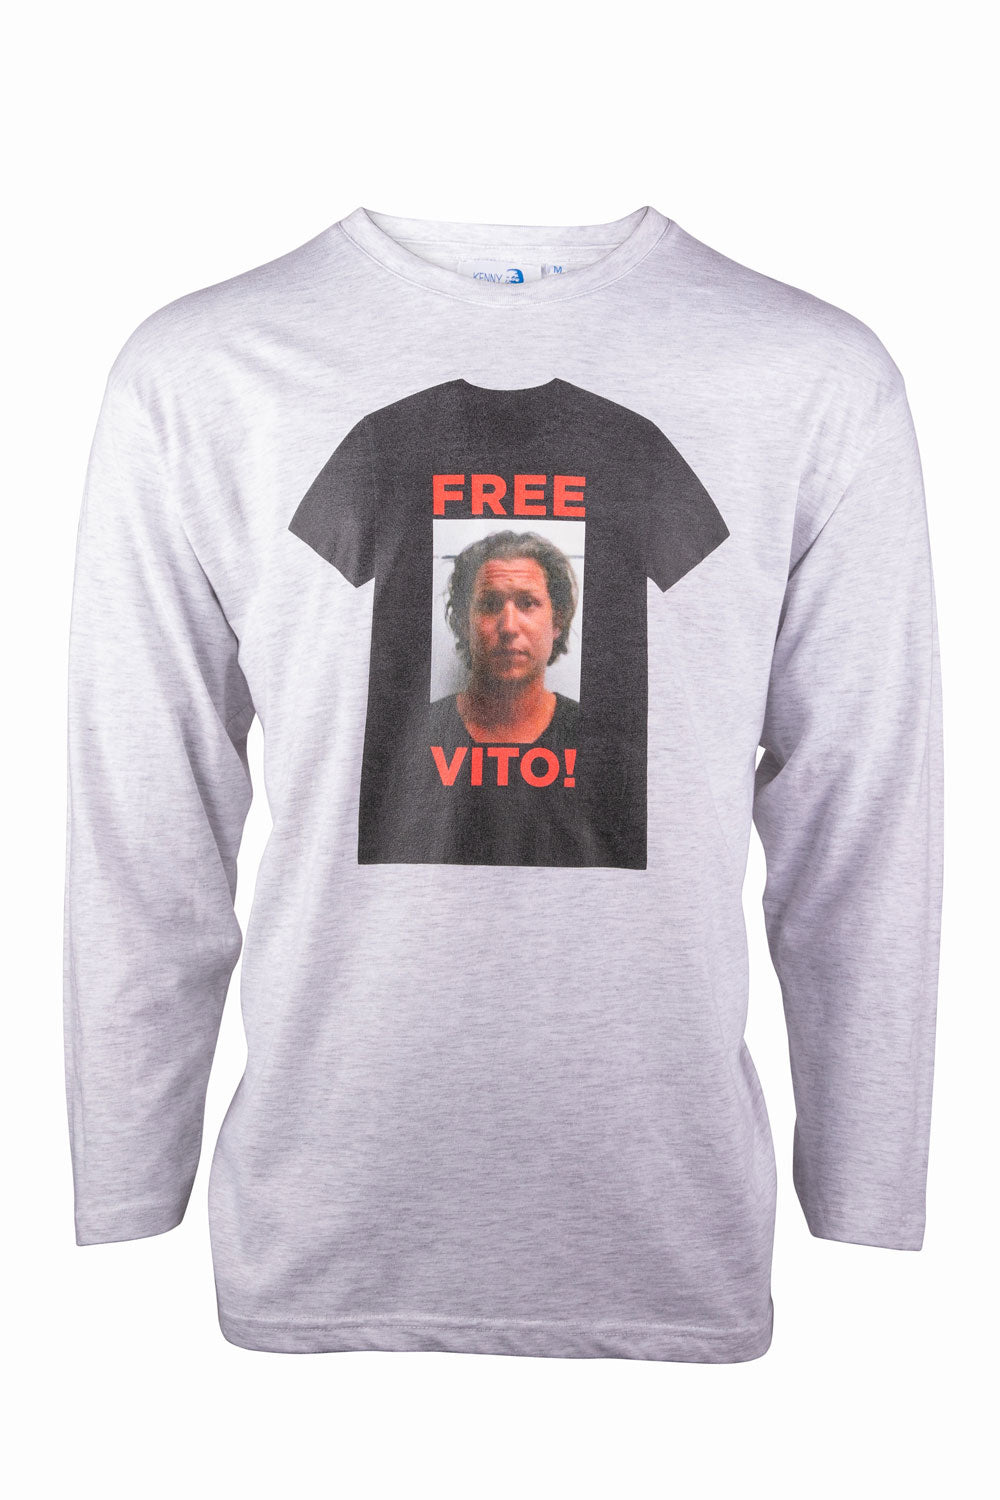 Kenny Schachter 'Free Vito' Long Sleeve Top